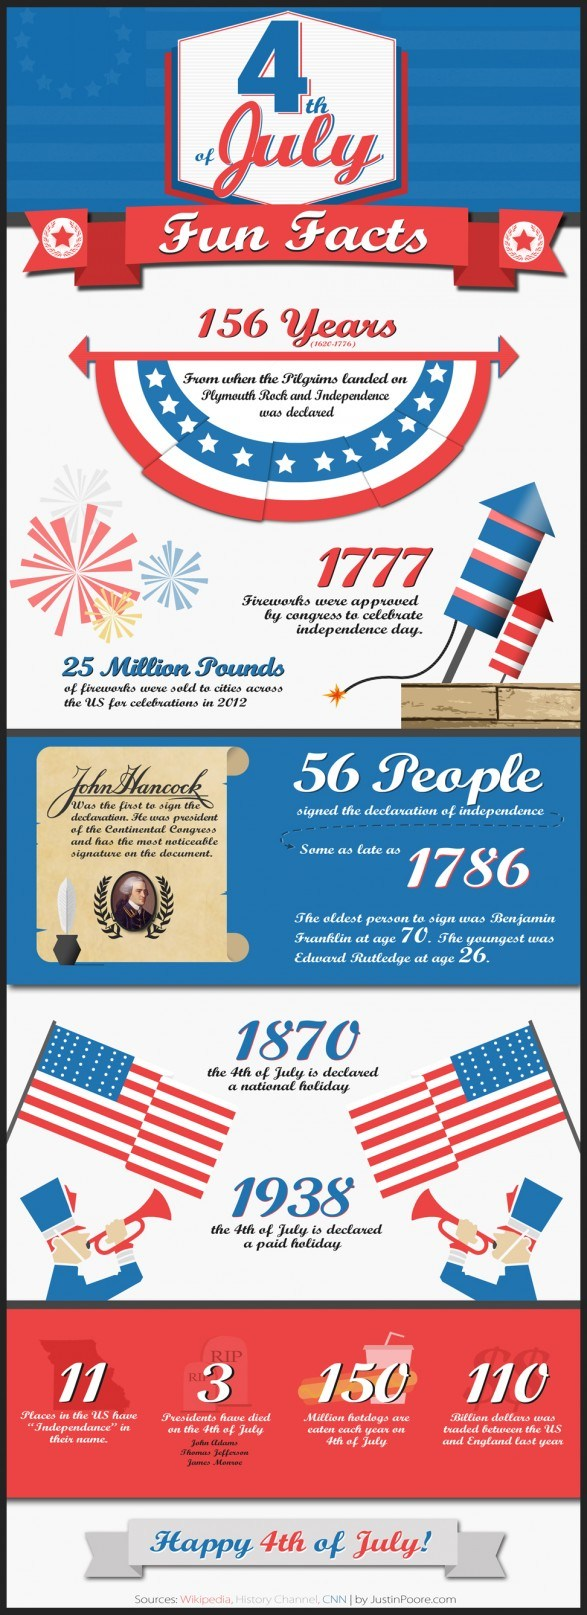 4th of July Fun Facts: Celebrate Independence Day in the United States. Celebrate your independence and freedom, whether you live in the United States or some other part of the world. We can all use a little more freedom.